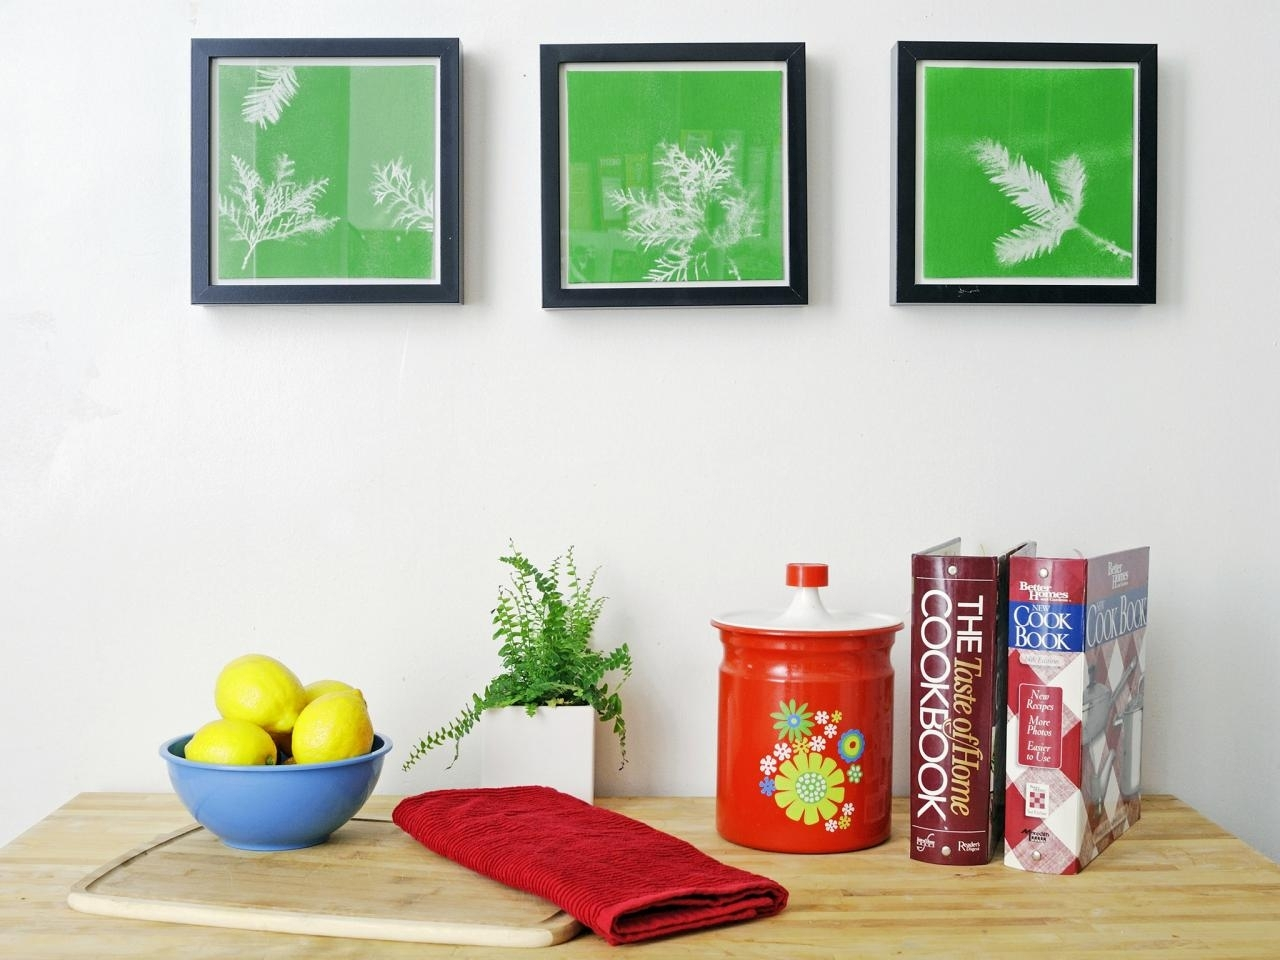 Turn Leaves And Foliage Into Diy Canvas Wall Art | Hgtv intended for Most Current Leaves Canvas Wall Art